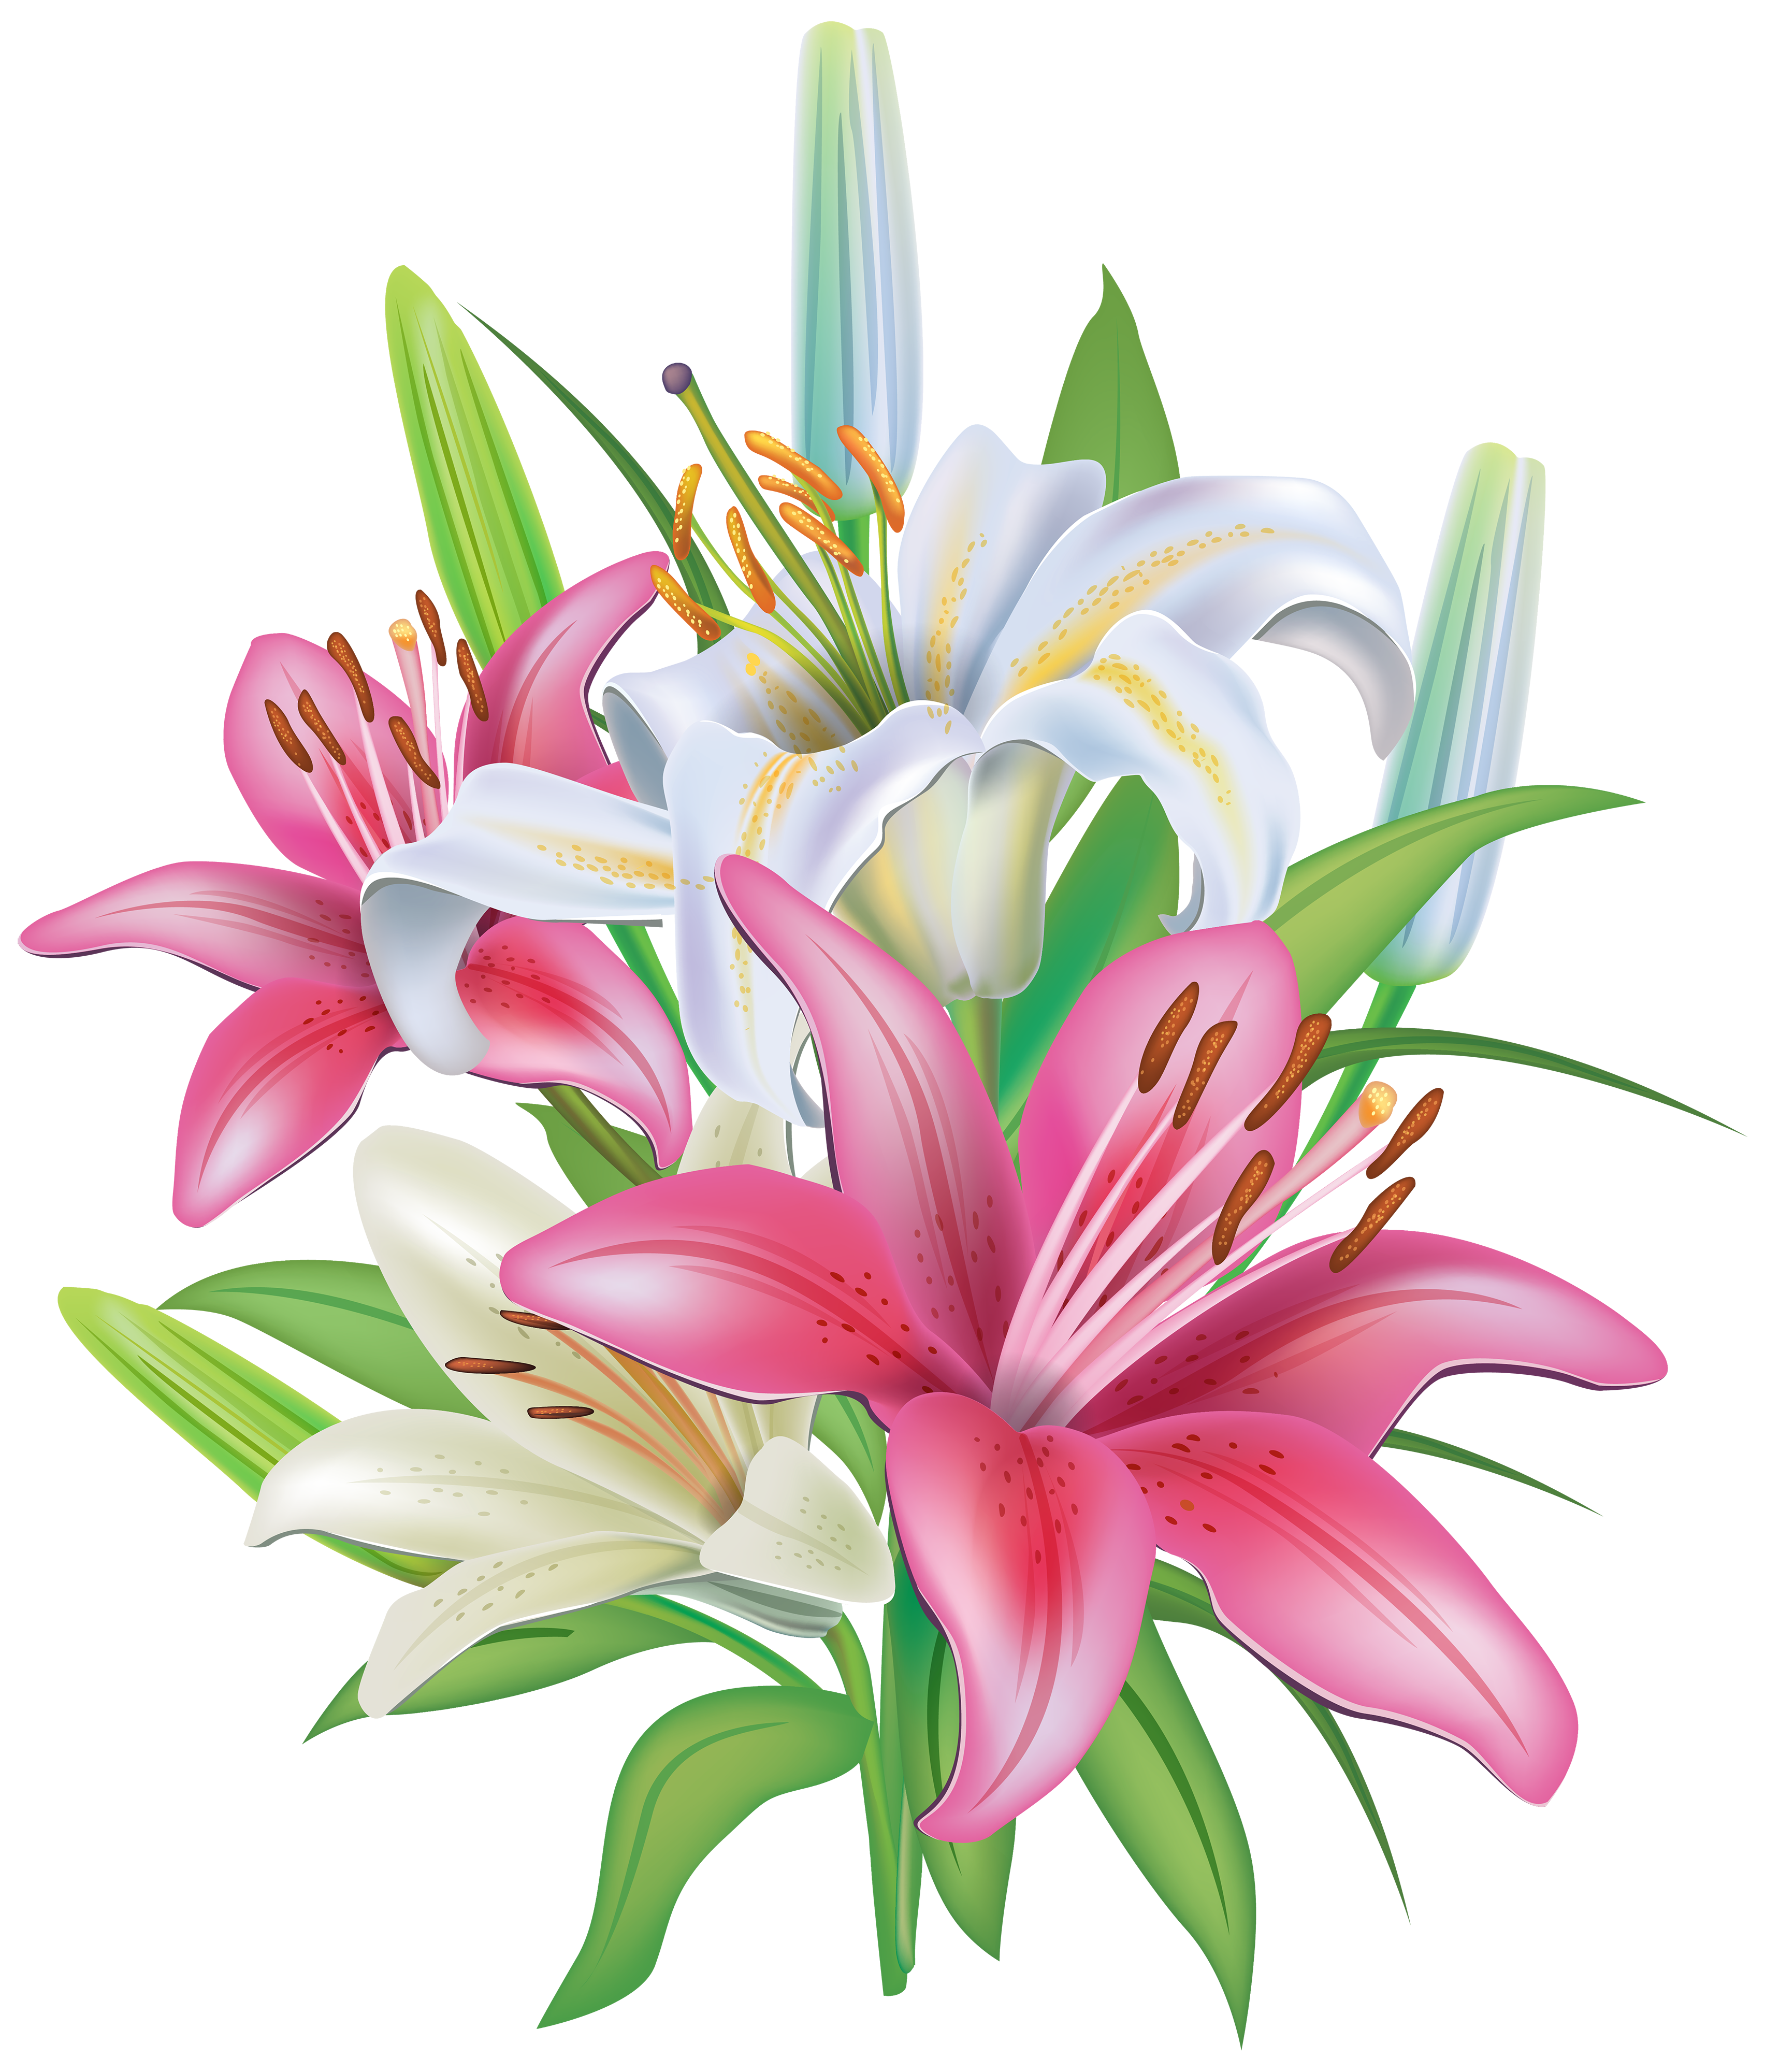 Asian flower clipart image library download Pink lilies clipart #6 | Flores | Pinterest | Pink lily and Clipart ... image library download